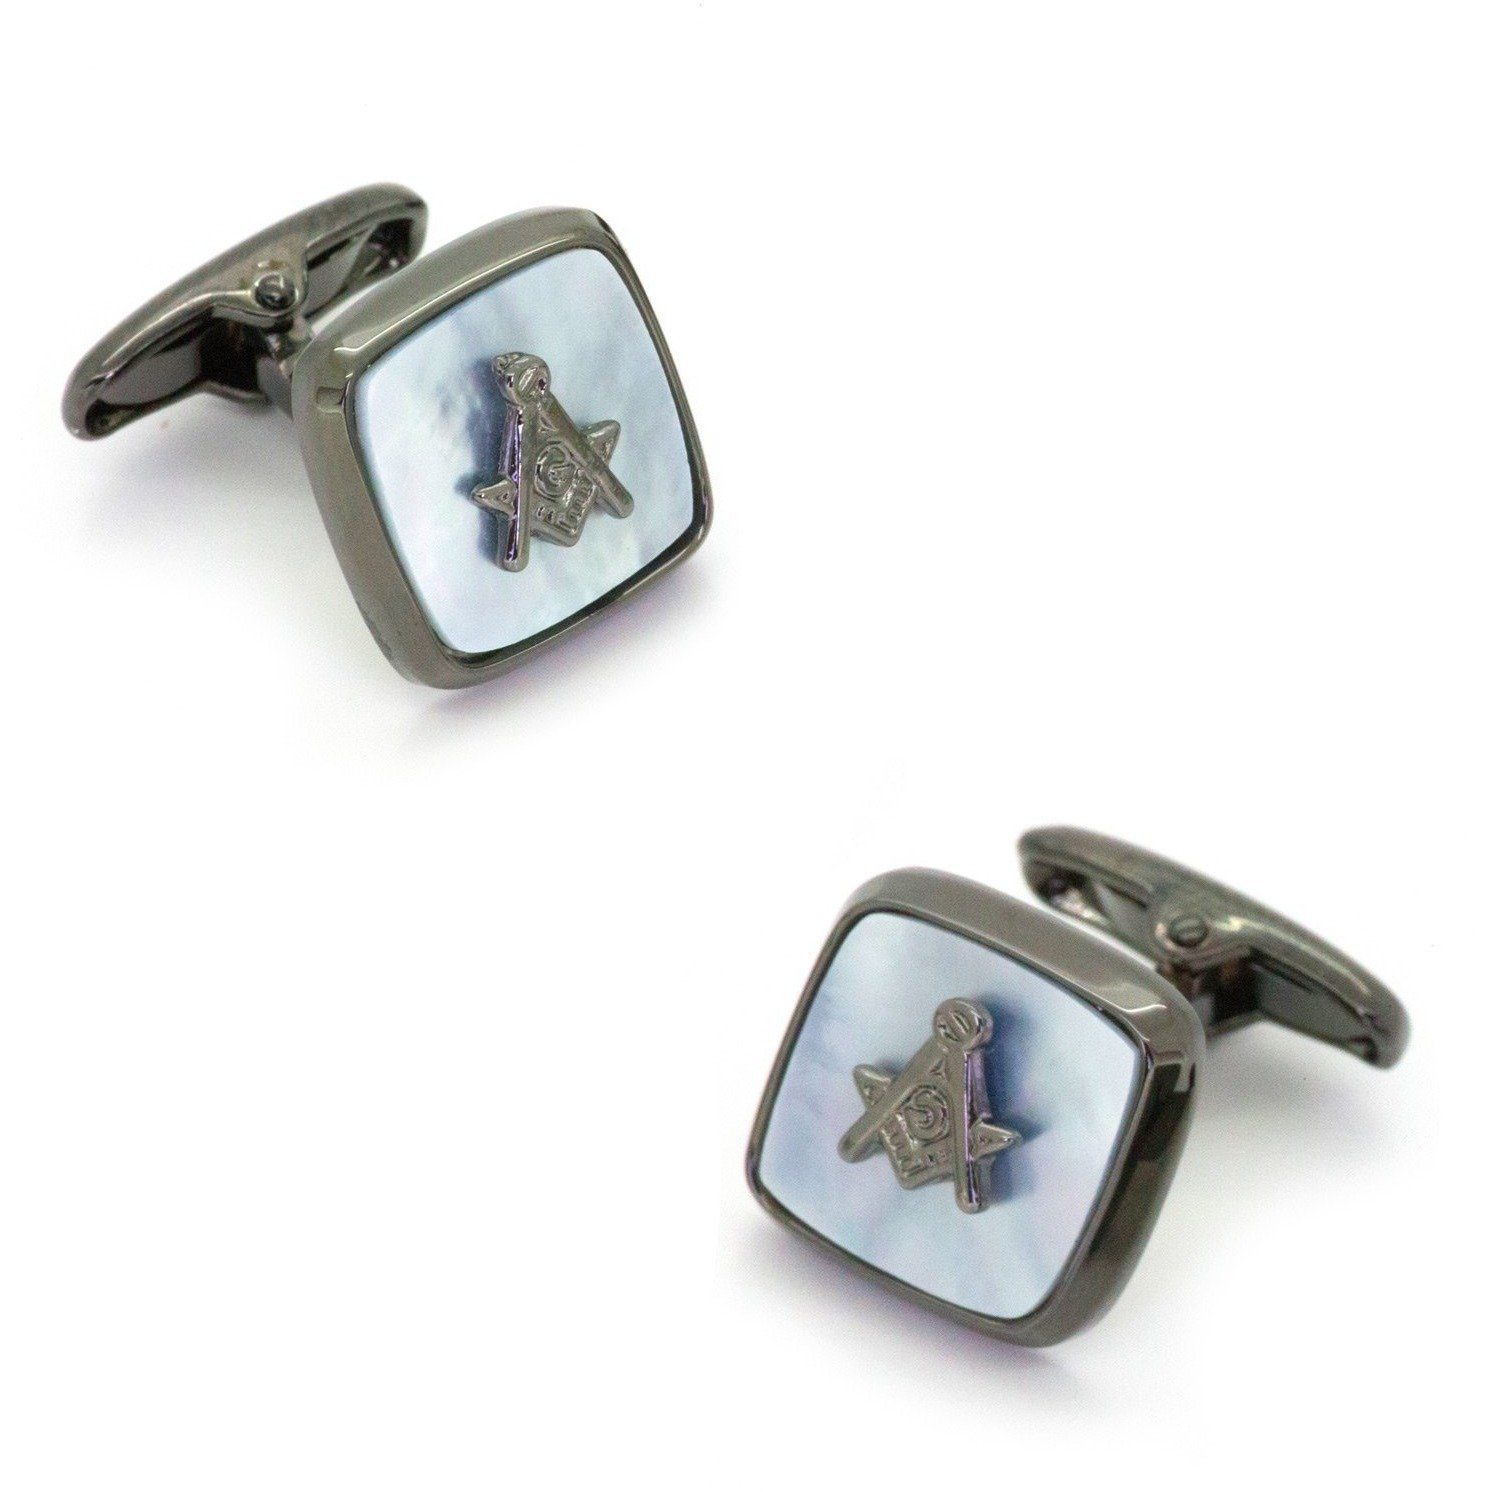 Freemason Masonic Square Gunmetal Mother of Pearl Cufflinks, Novelty Cufflinks, Cuffed.com.au, CL9321, $29.00